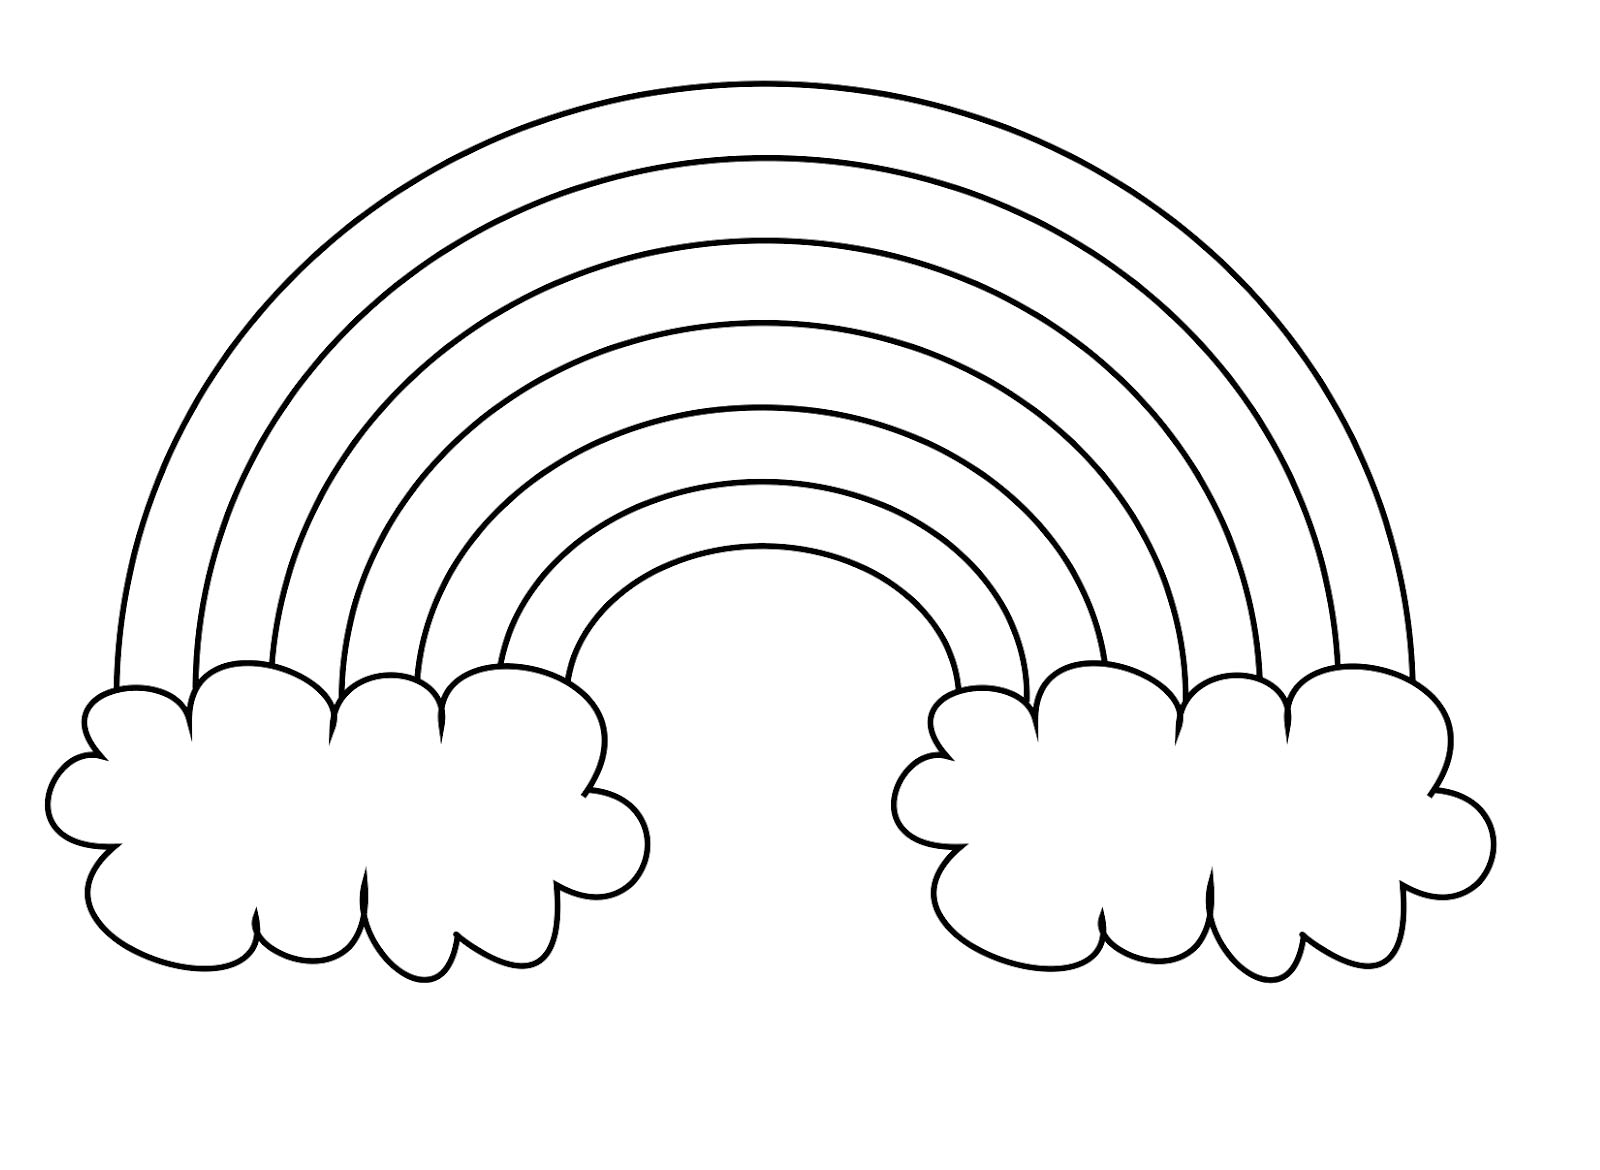 rainbow coloring pages | Only Coloring Pages